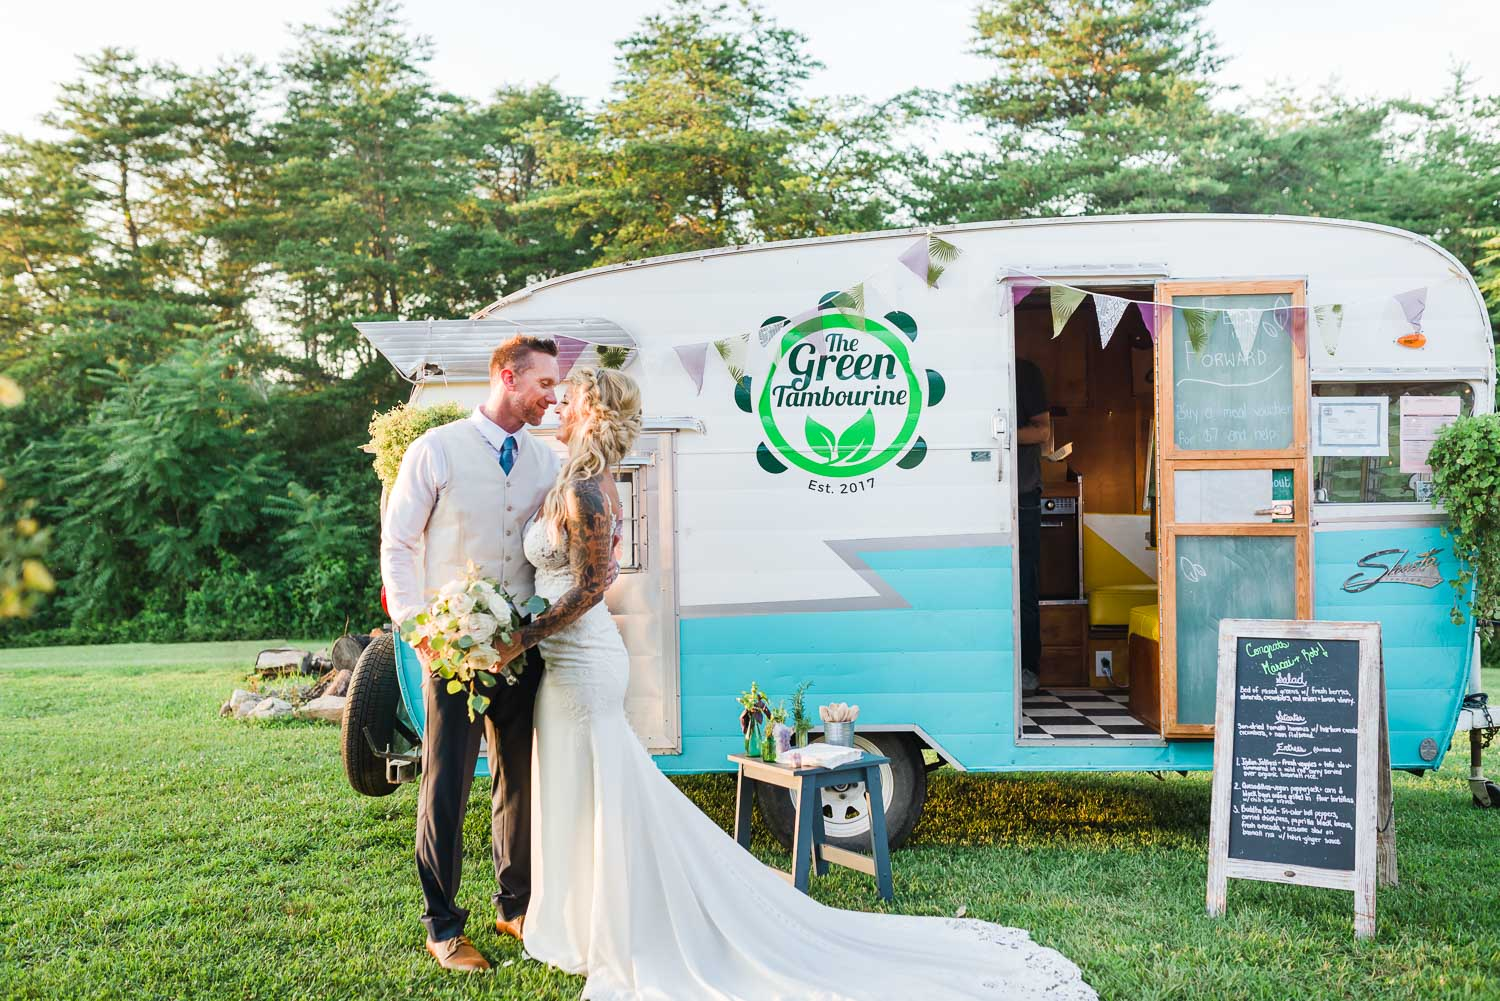 bride and groom in front of The Green Tambourine vegan food truck or food camper in Tennessee